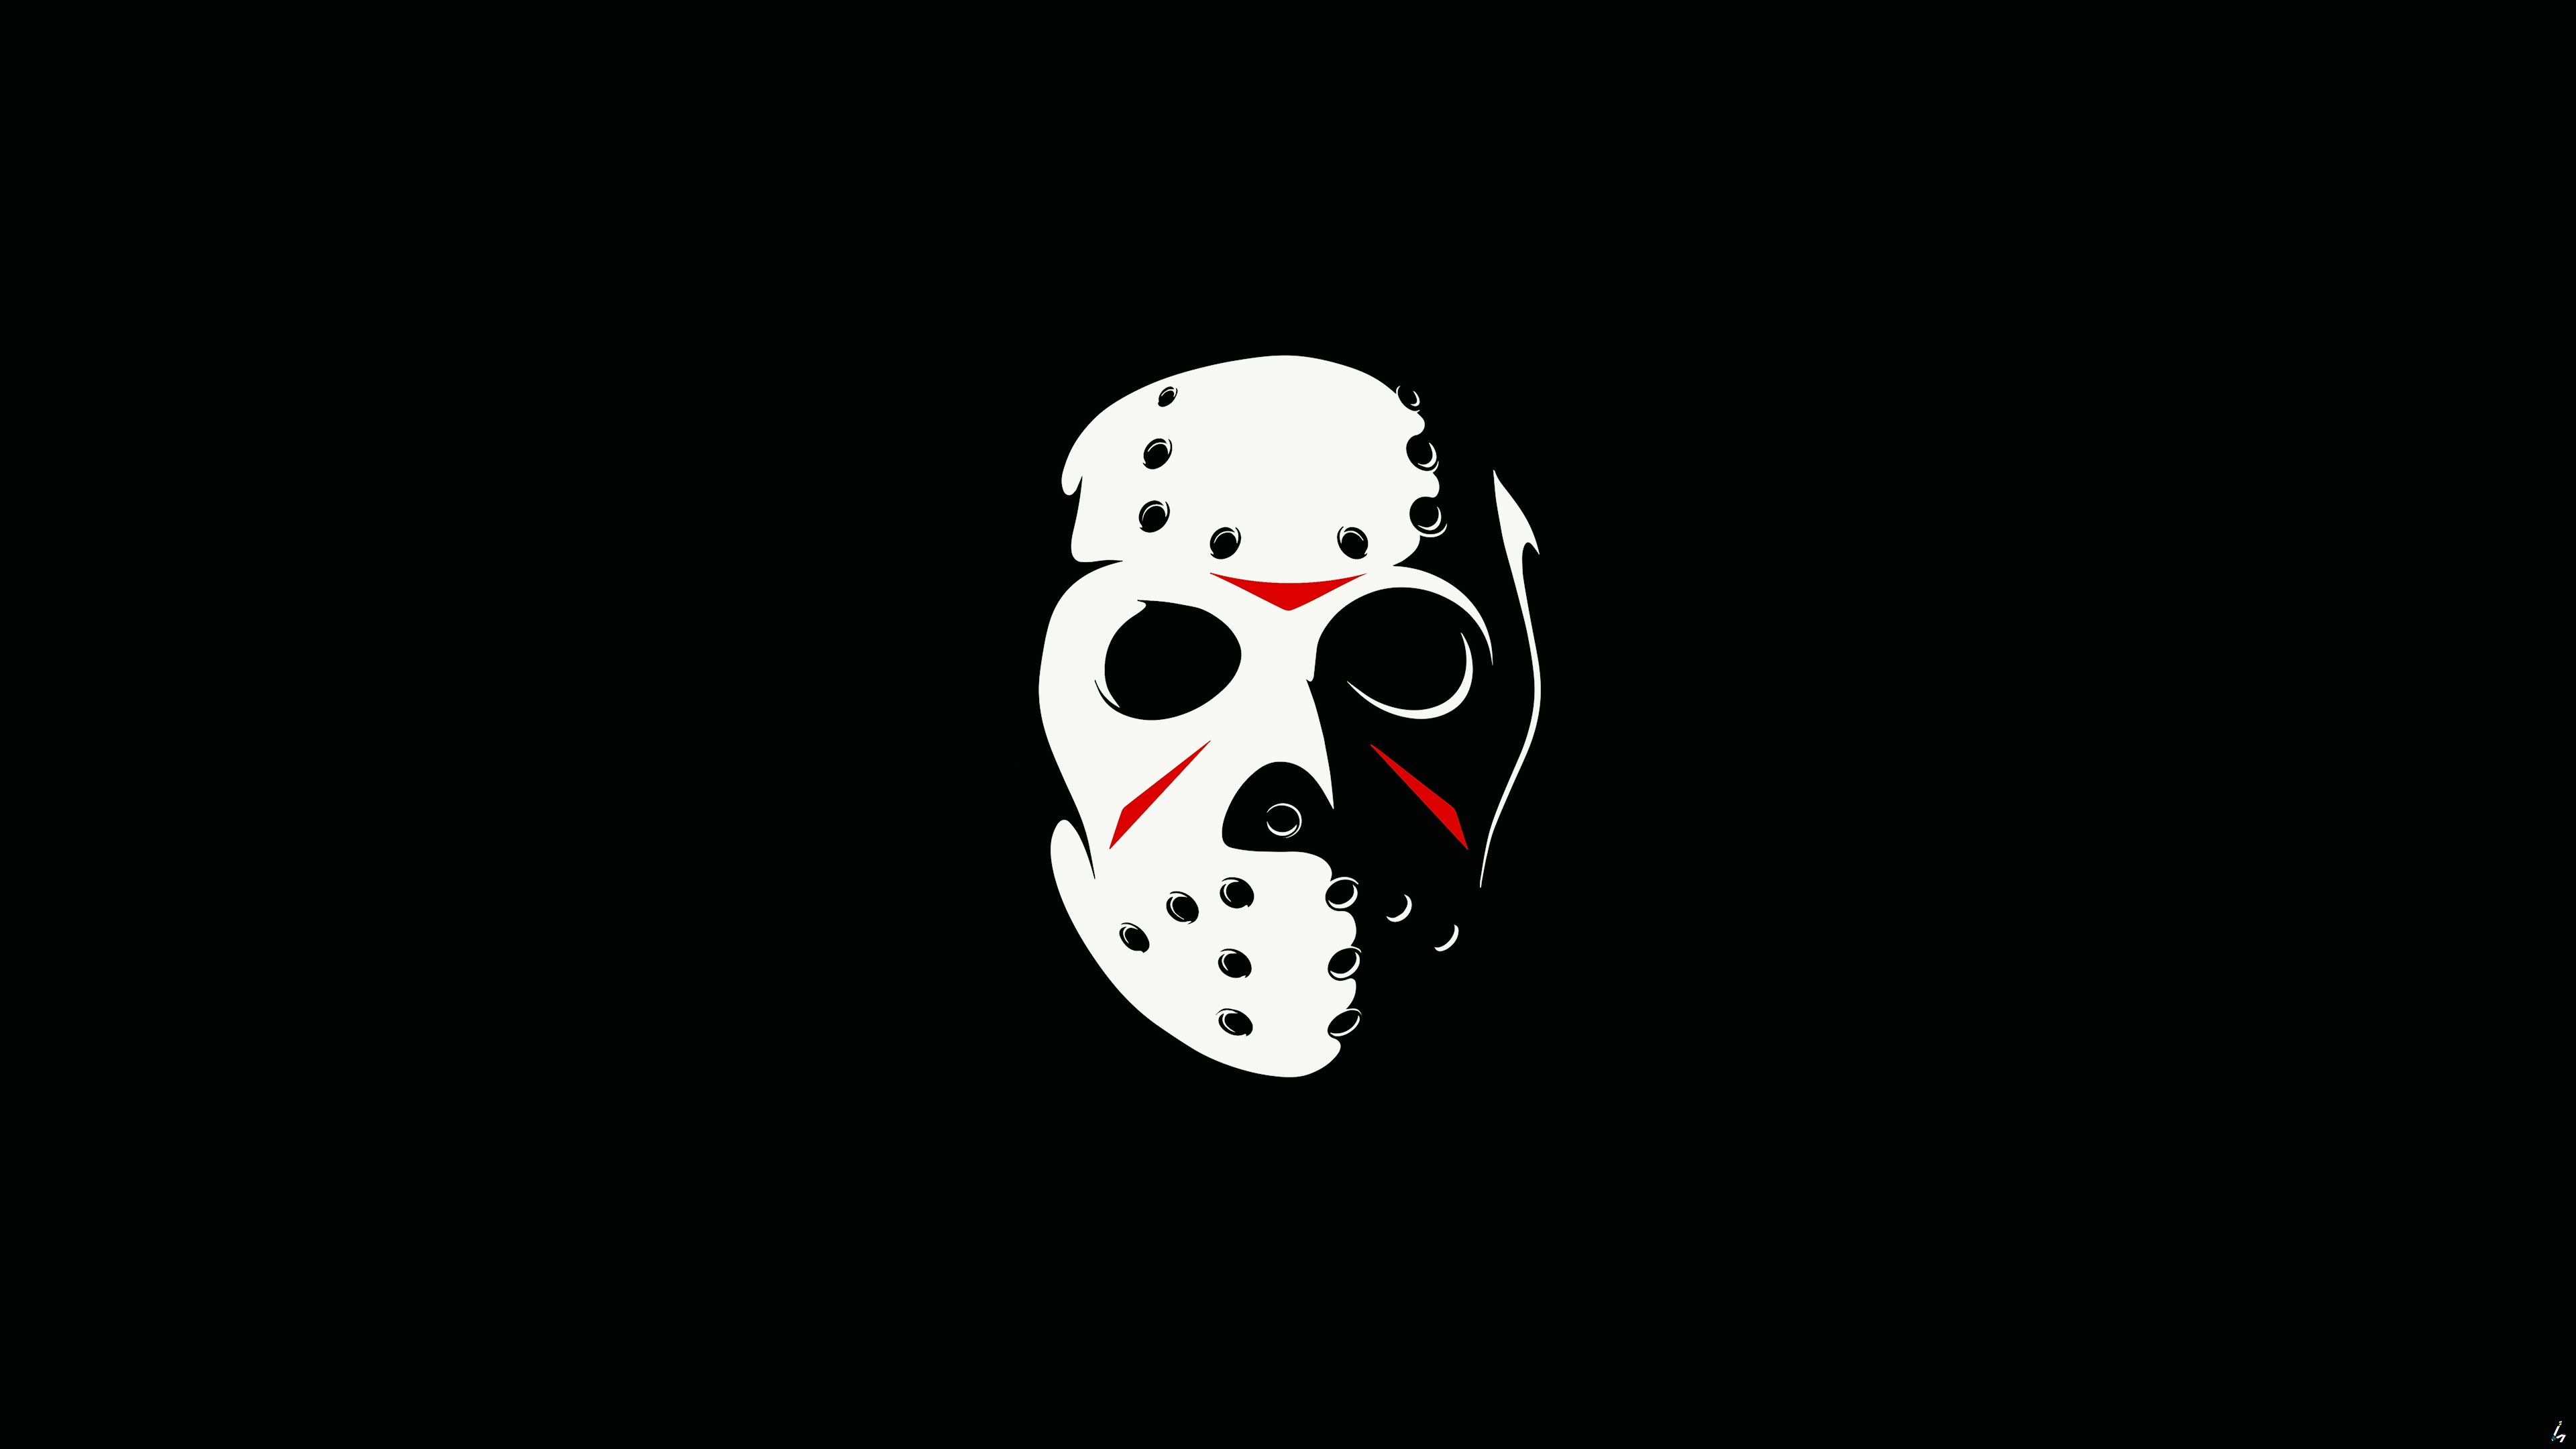 Friday The 13th The Game Minimalism Dark 4k hd wallpapers games 3840x2160